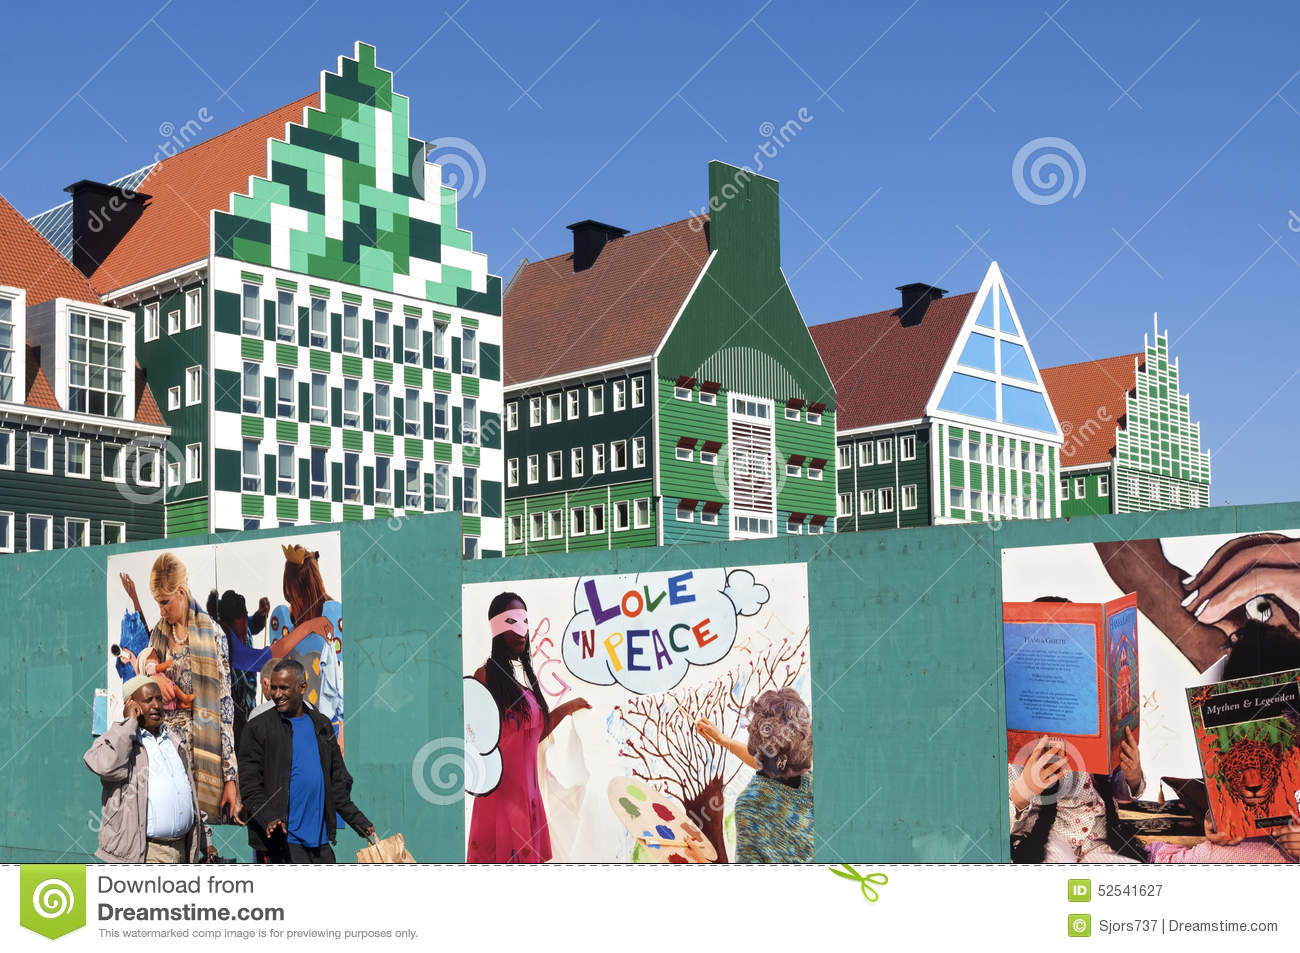 Colorful City Hall Zaandam, Netherlands